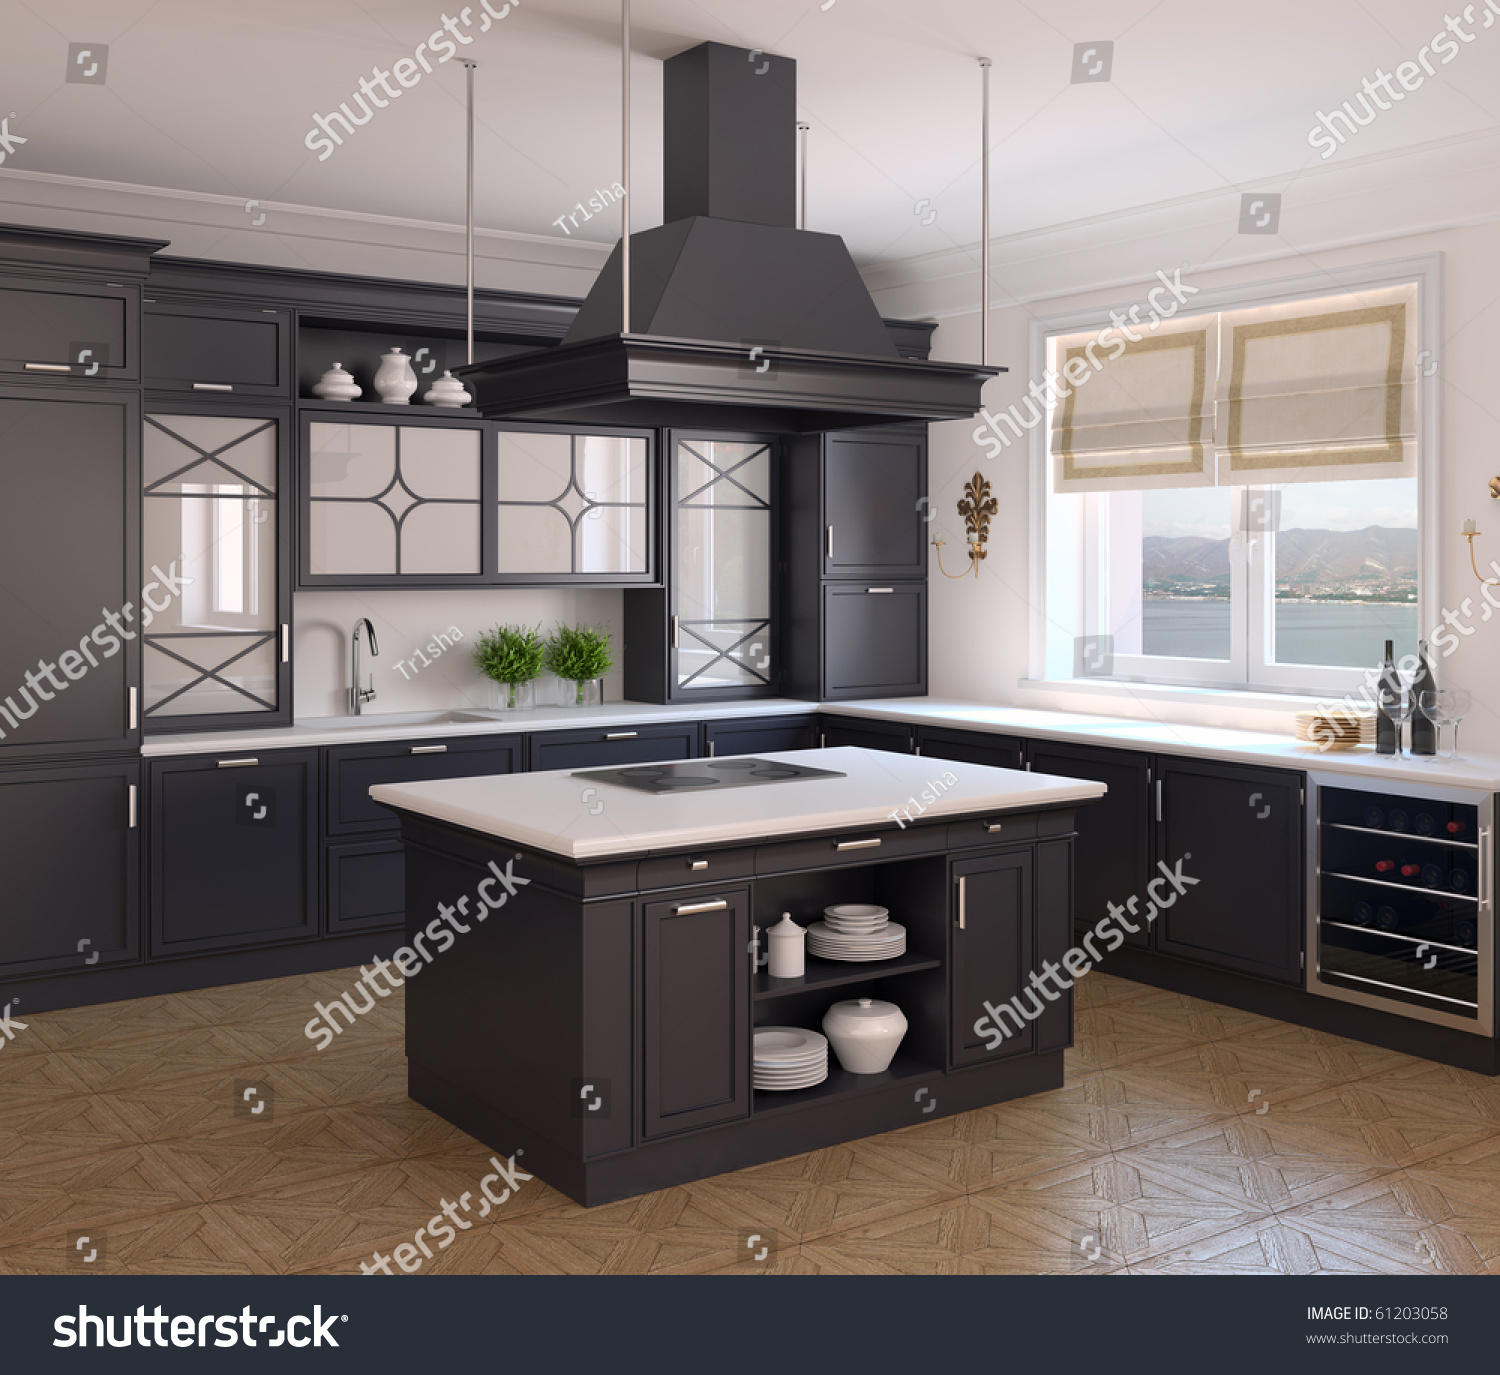 Traditional White Kitchen Design 3d Rendering: Interior Classic Black Kitchen 3d Render Stock